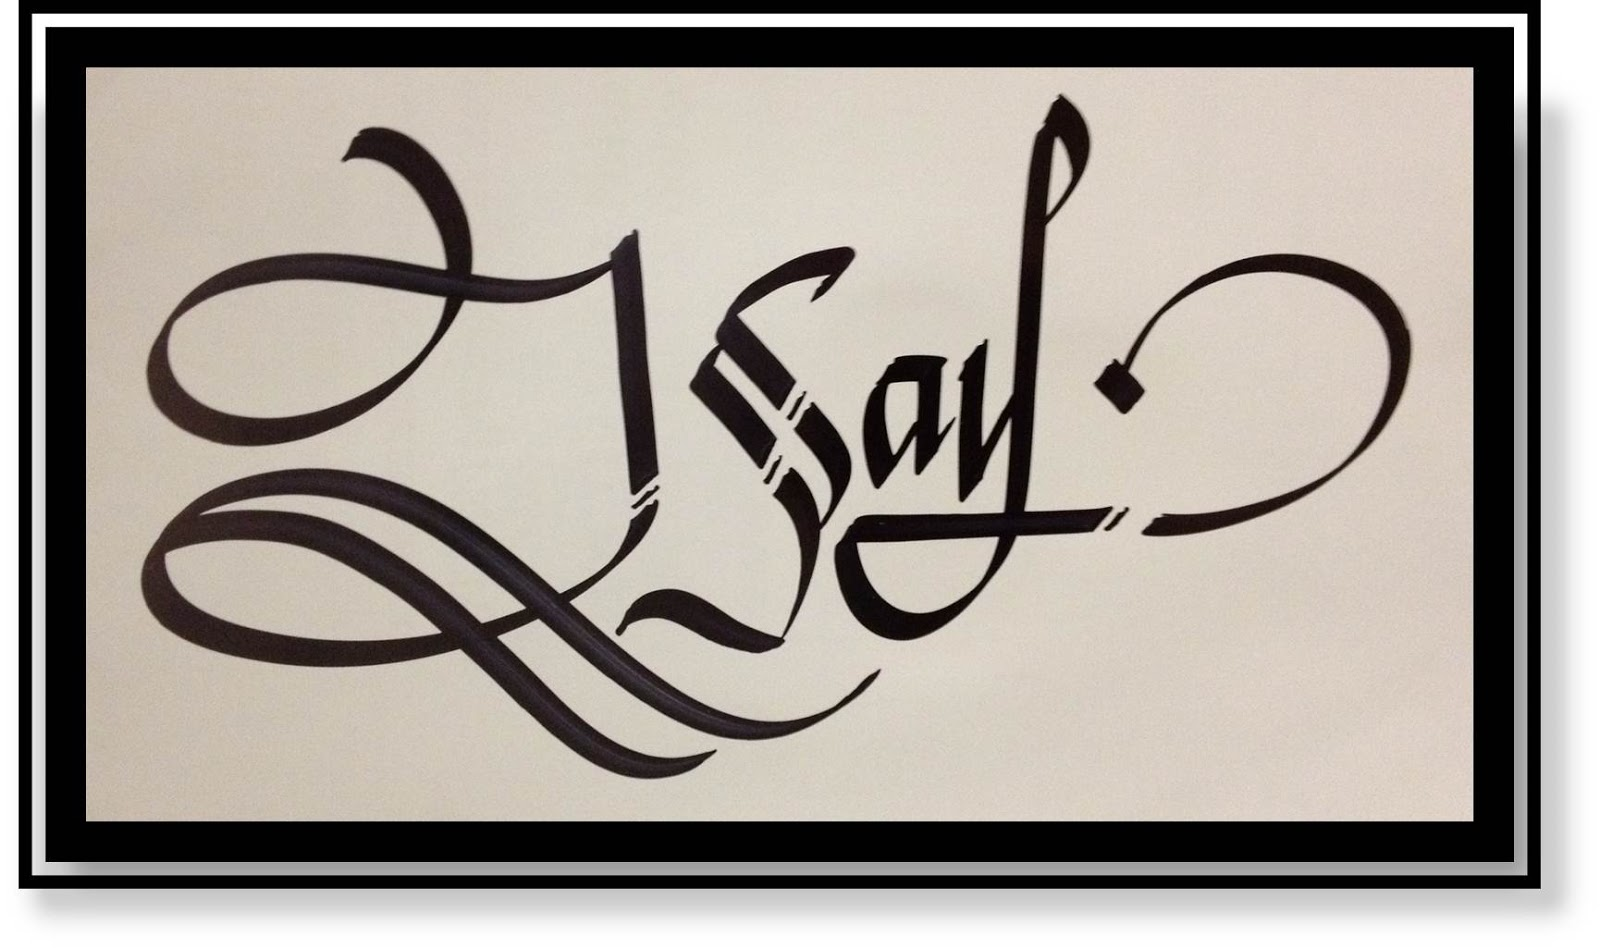 Calligraphy art russian names in isay